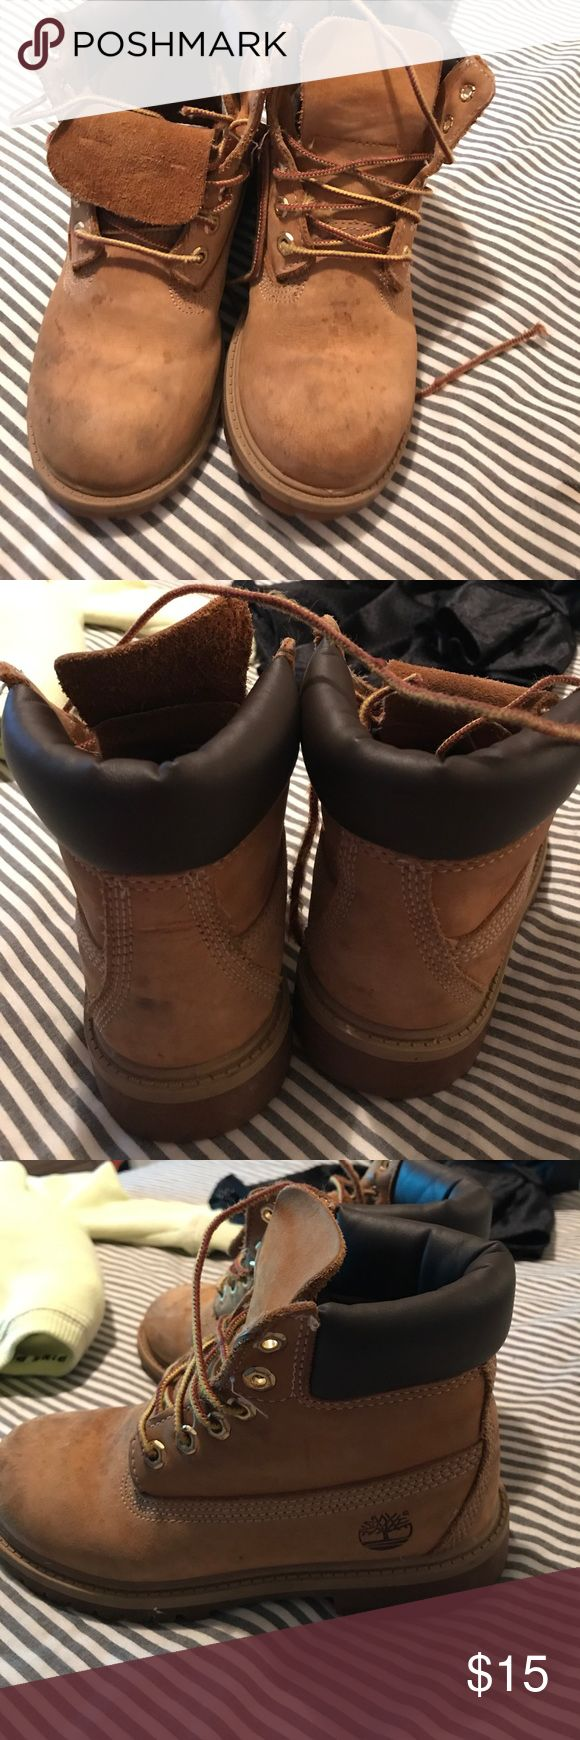 Little boys timberland boots There is a LOT OF WEAR. Price is negotiable Timberland Shoes Boots